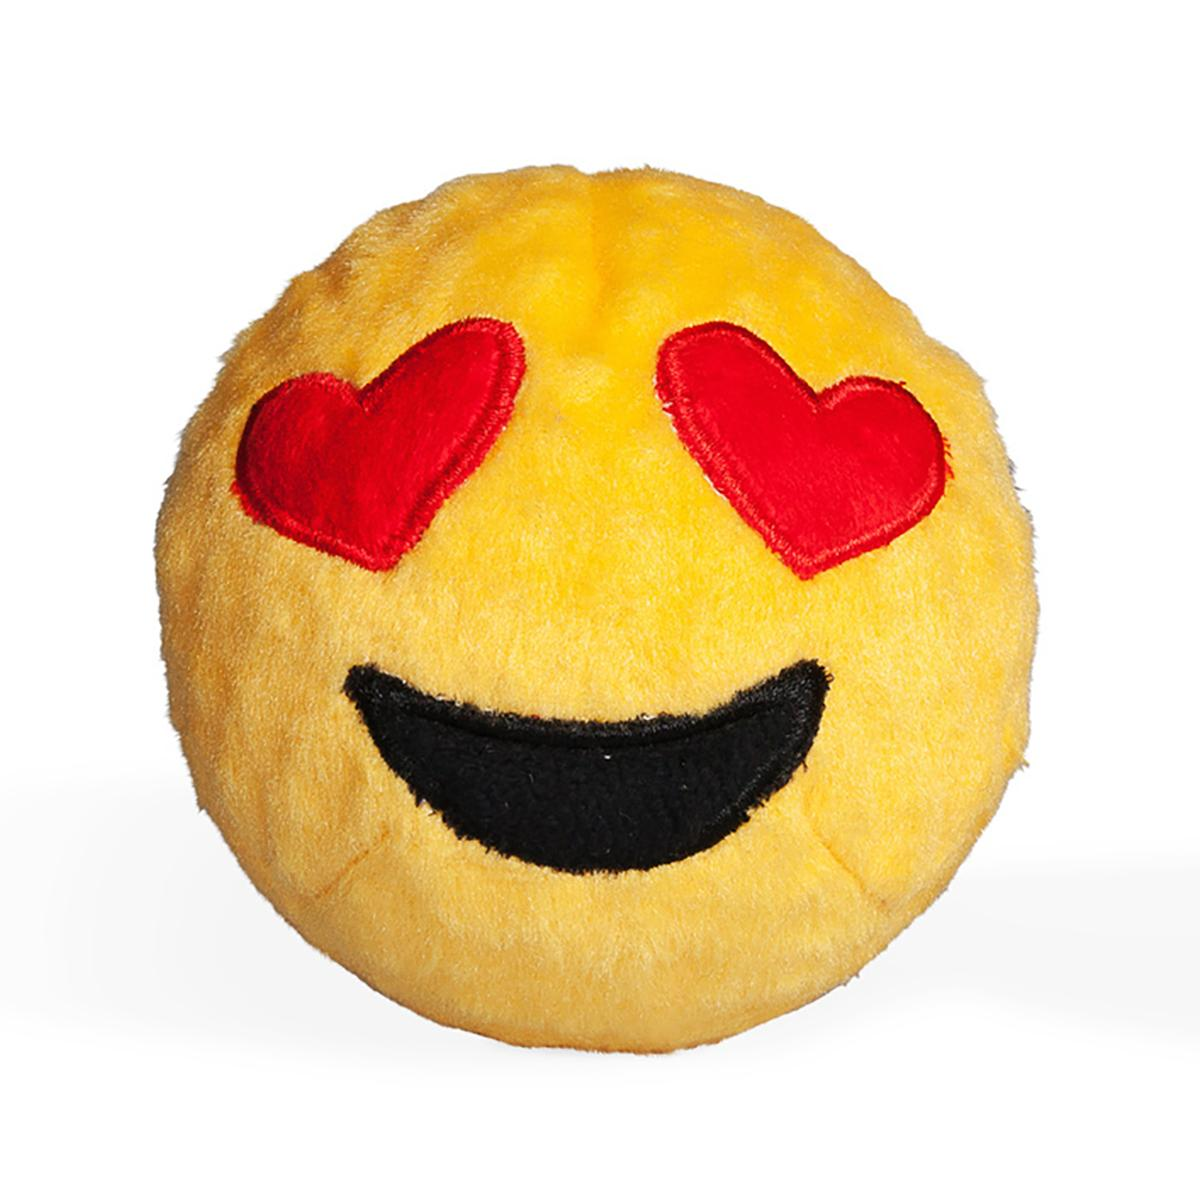 Emoji Faballs Dog Toy - Heart Eyes Love